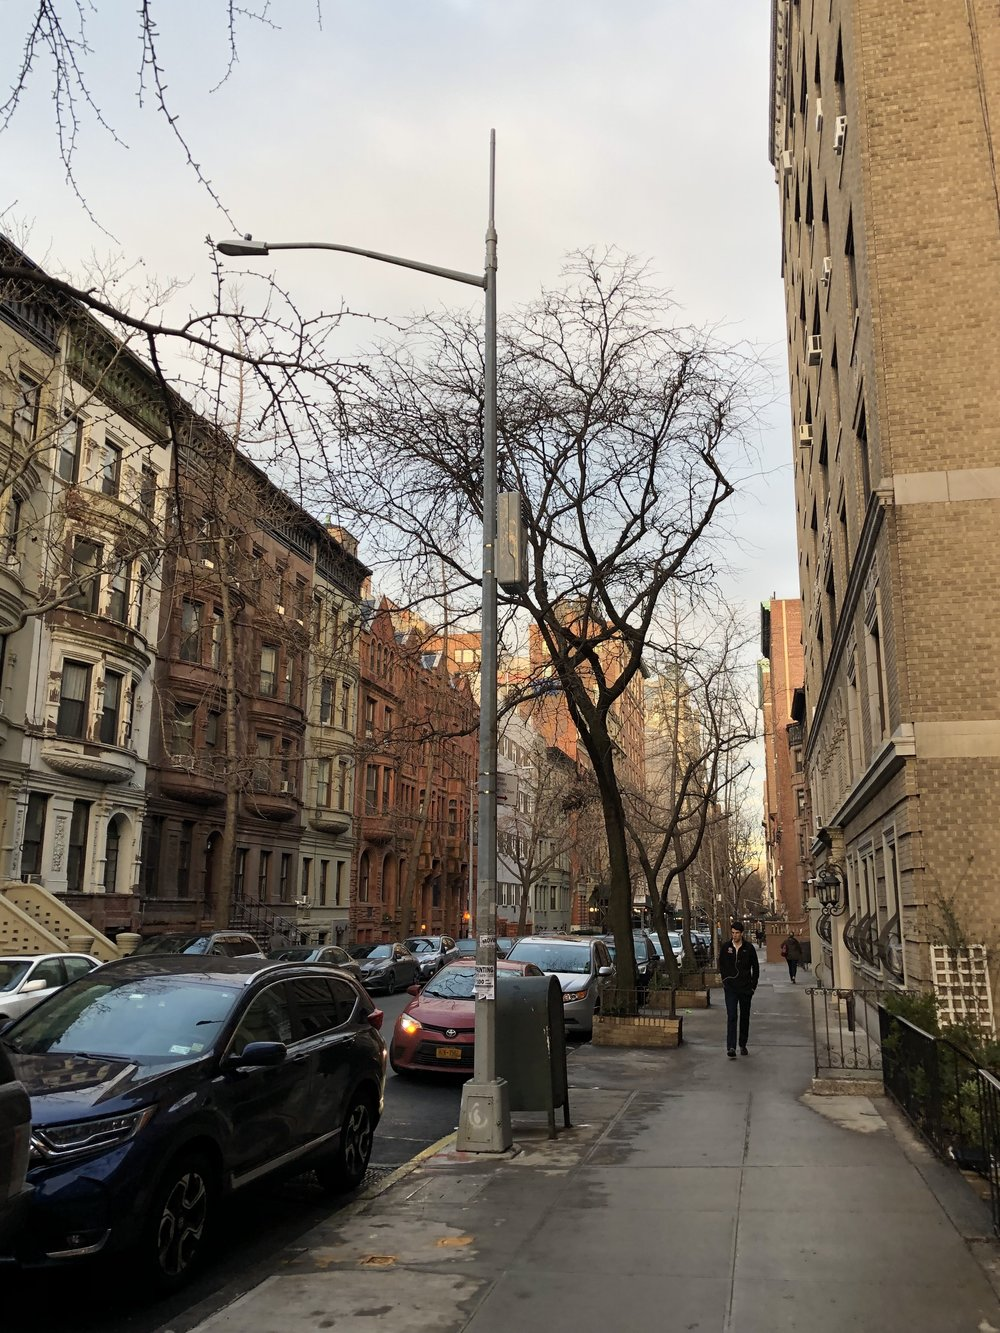 Here is the same light pole. Notice how close this antenna is to the 6th and 7th floor windows of this high-end building. Photo © 2019